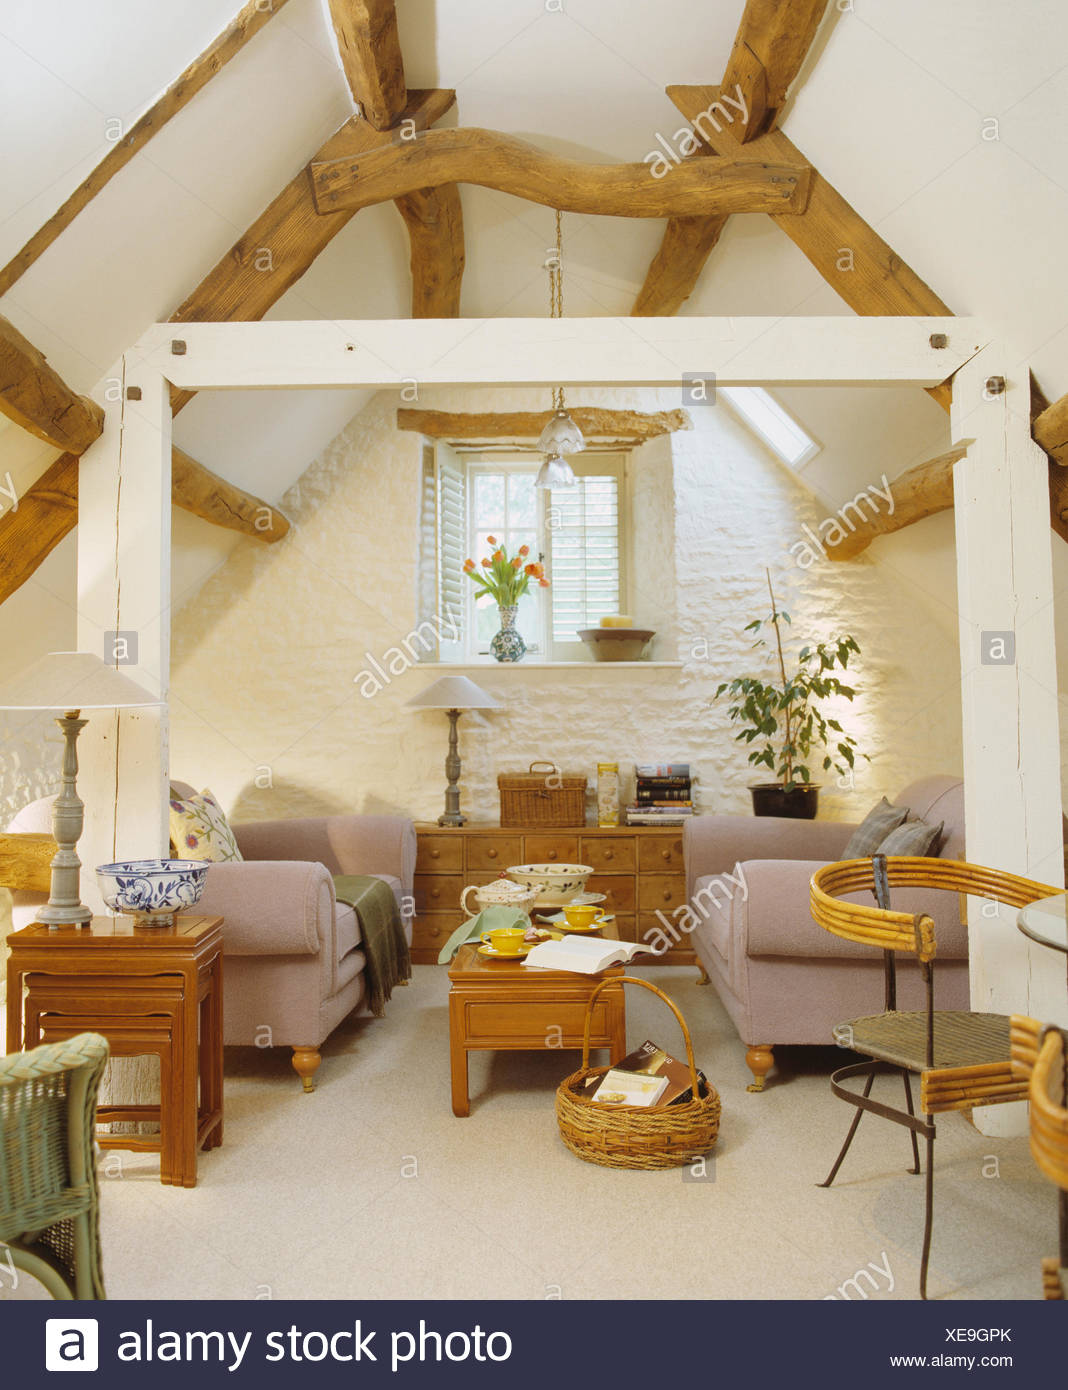 Old Oak Beams And White Painted Support Beam In Country Loft Living